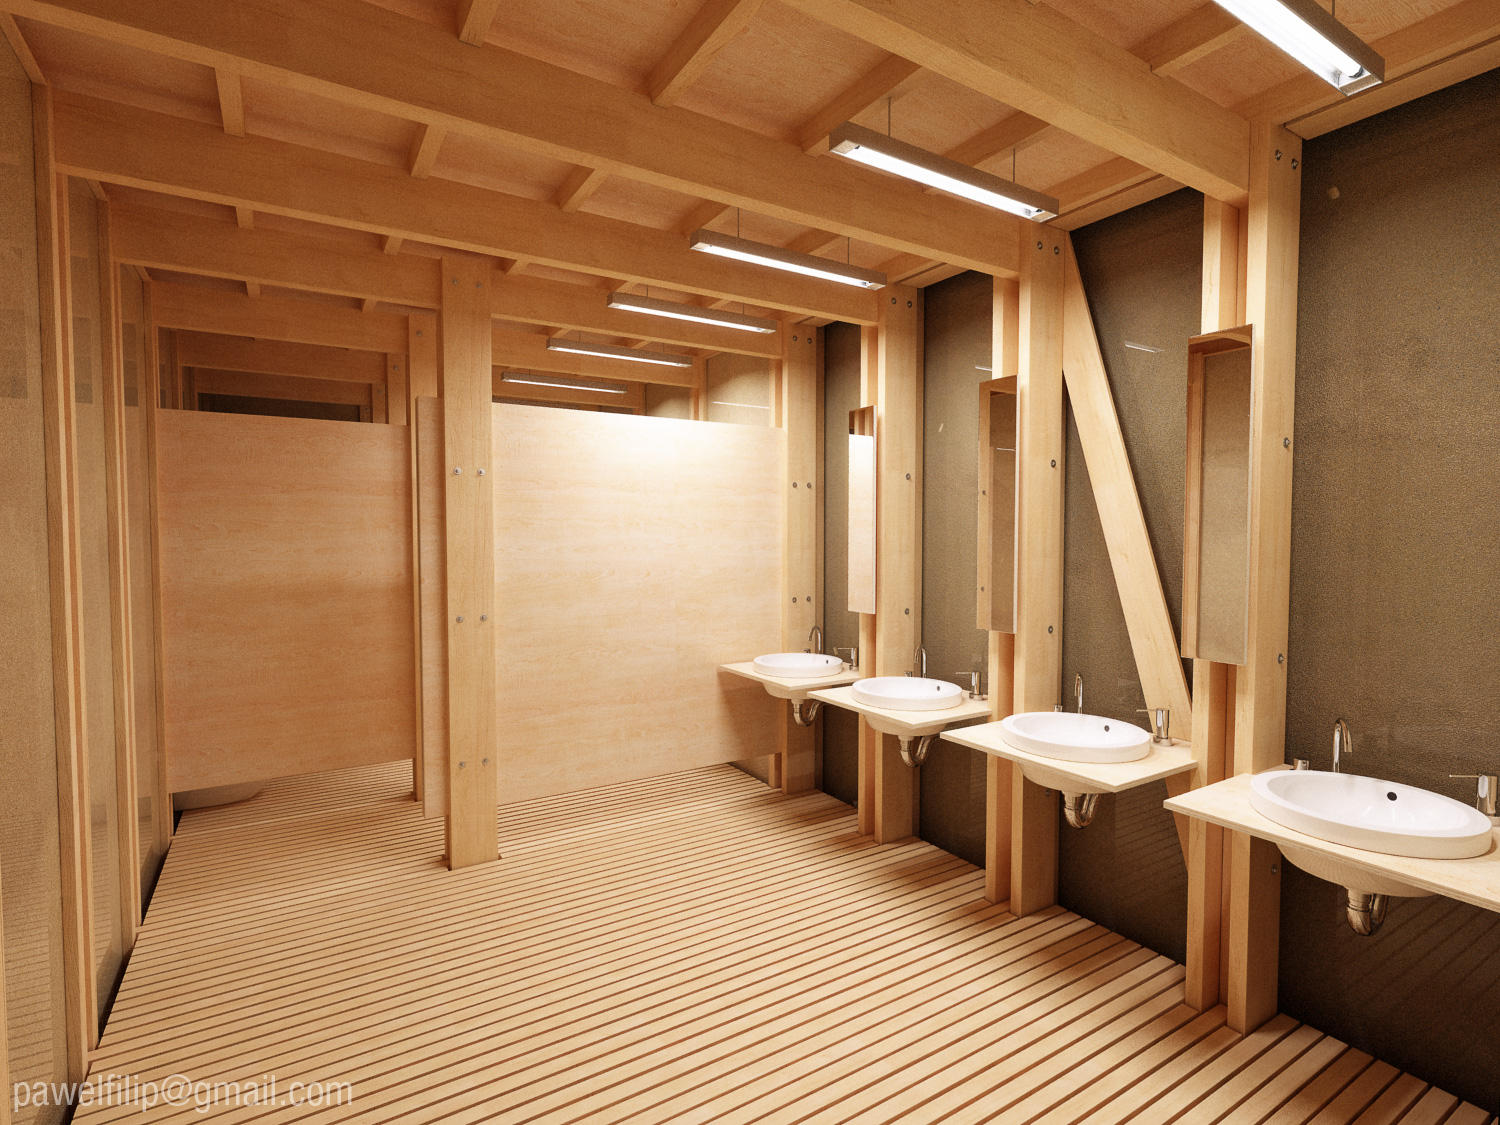 Public toilet interior night by zmoodel on deviantart for Washroom interior design